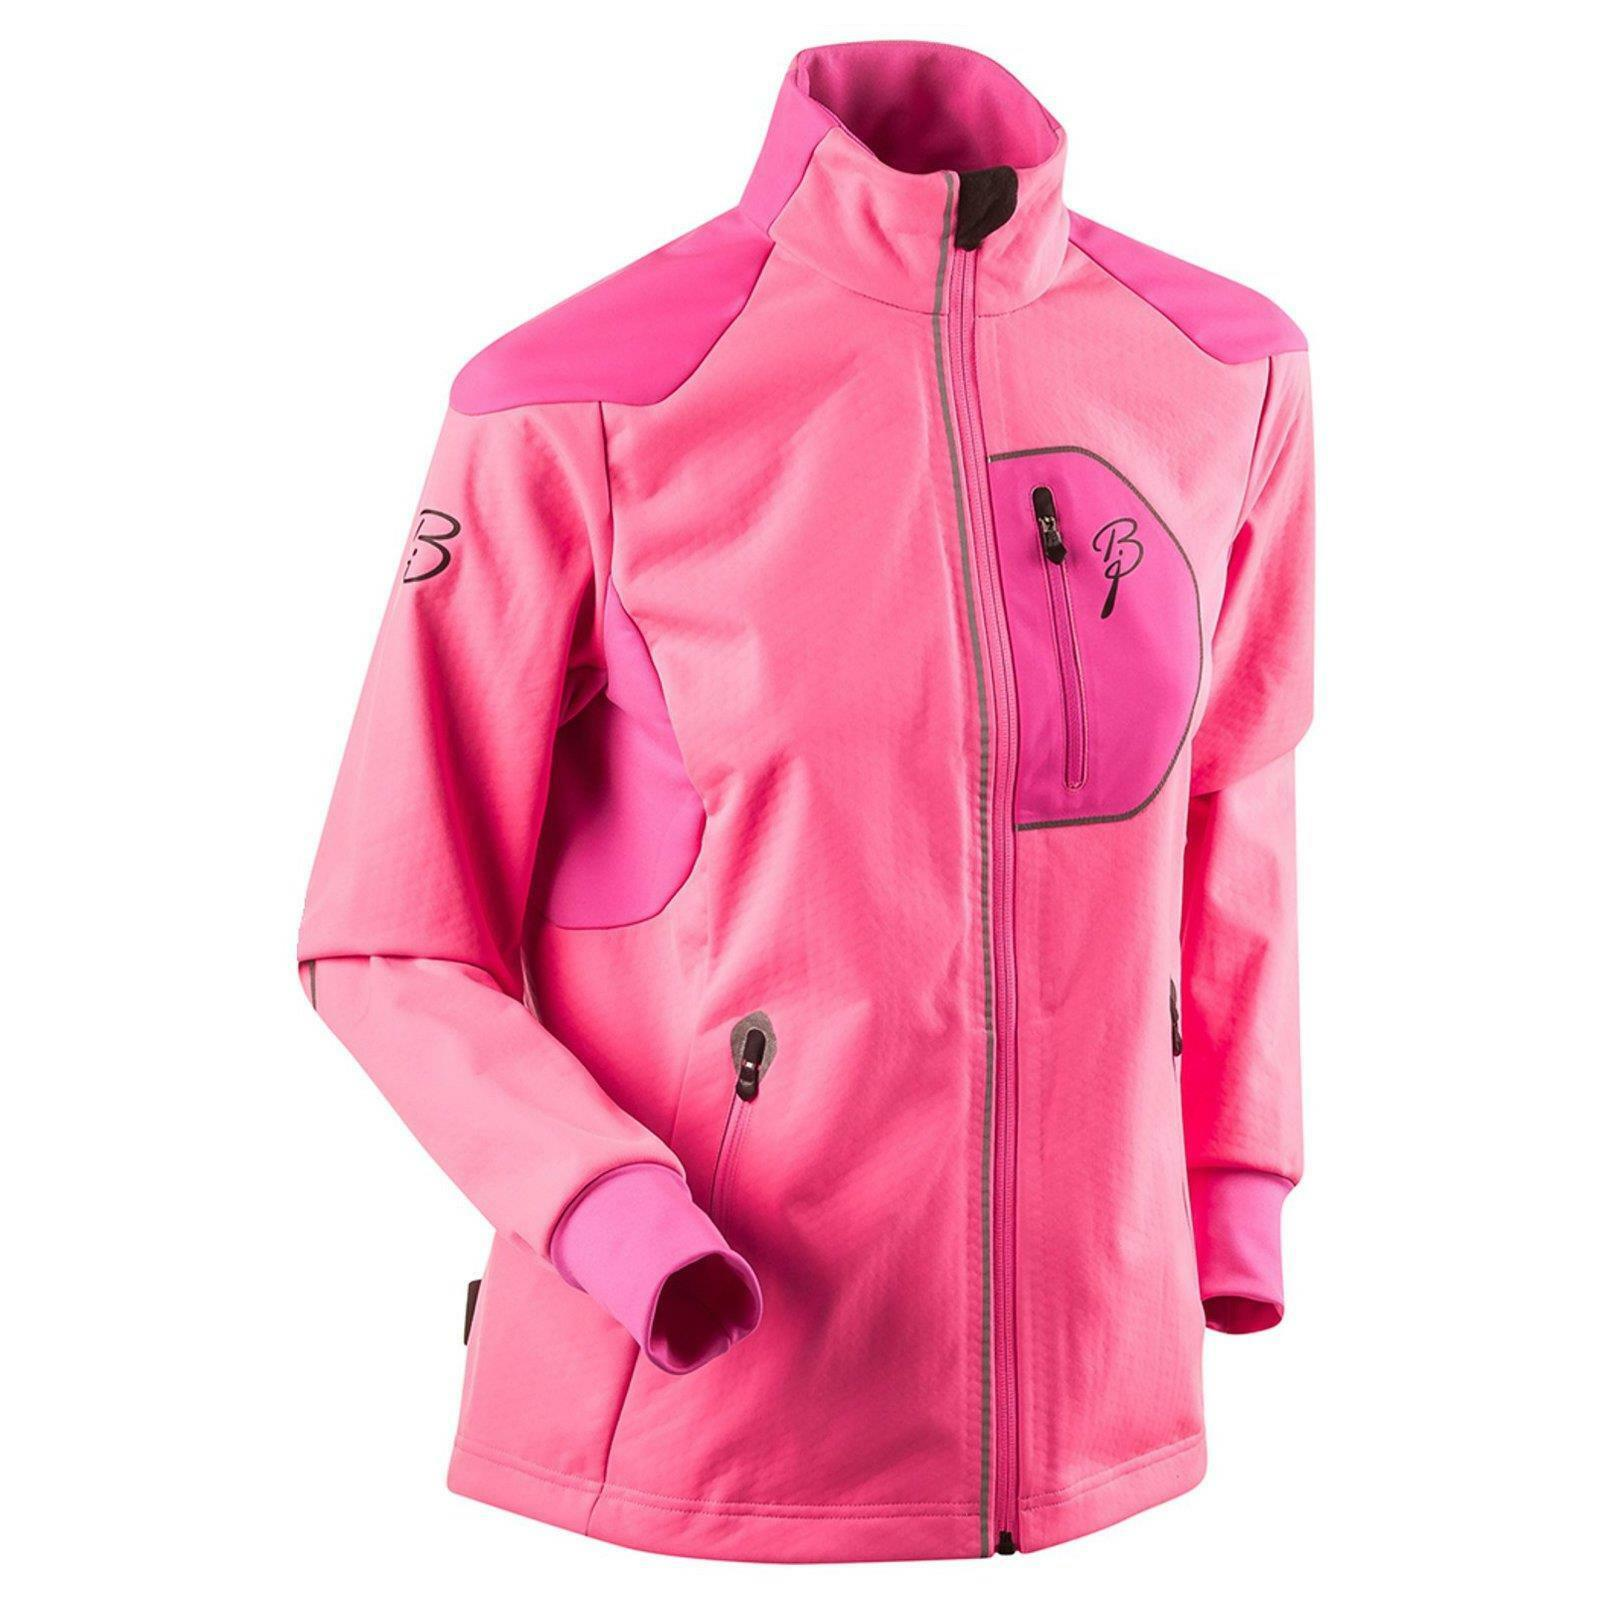 Björn Daehlie Ventus Donna Funzionale Giacca Softshell Sport Lungo Corsa Sci Outdoor